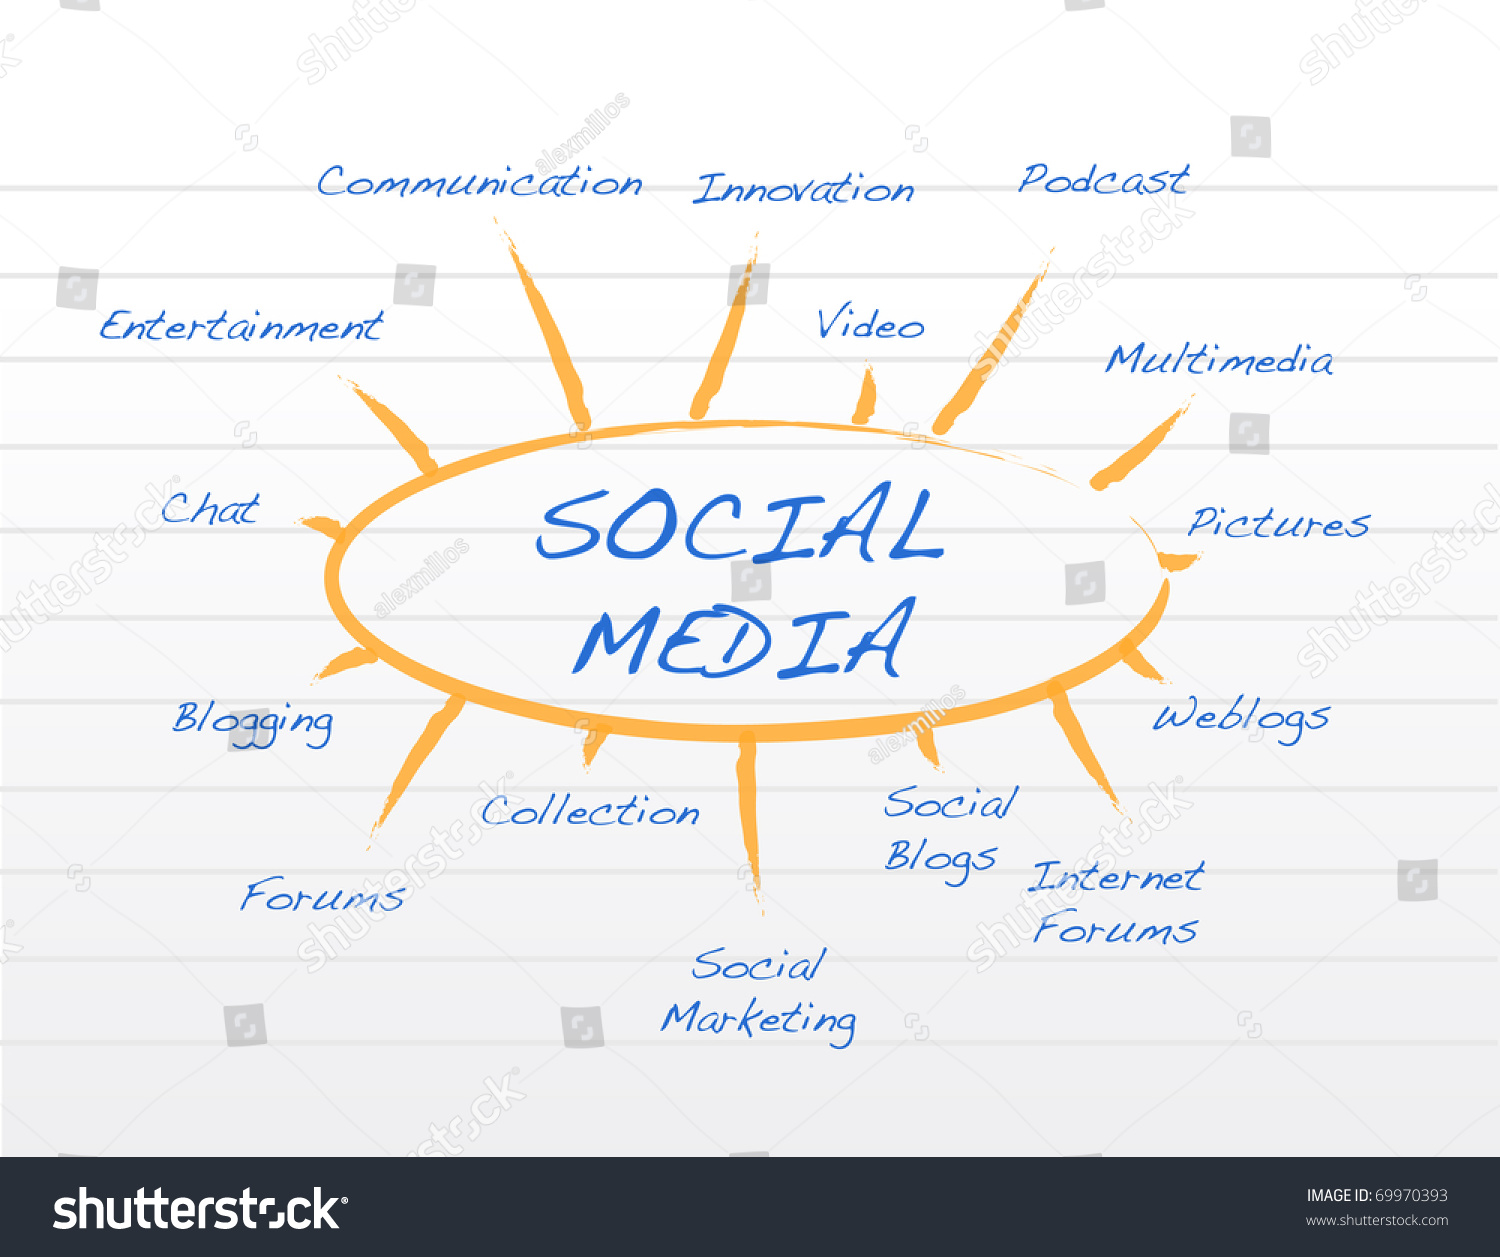 Social Media and Mind Control- The Creation of a Hive Mentality